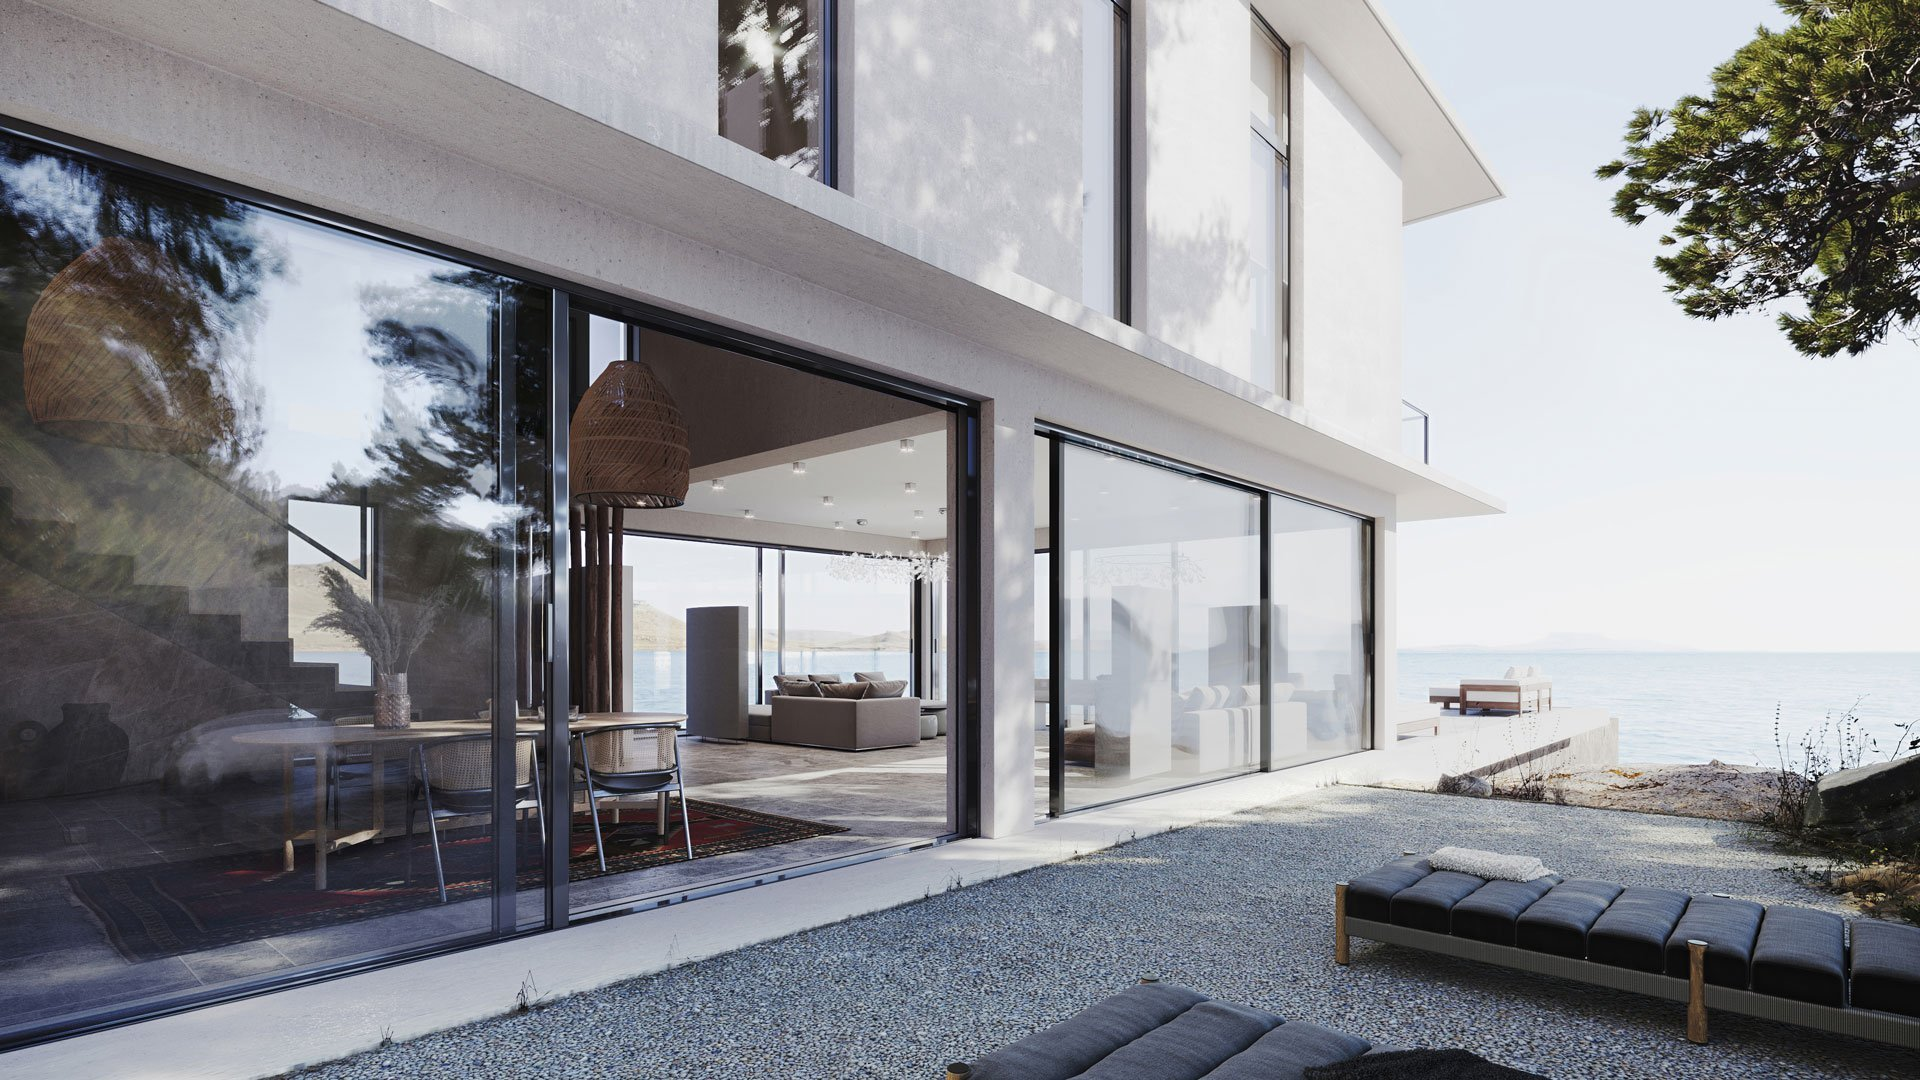 3D Exterior Visualization of a Seaside House